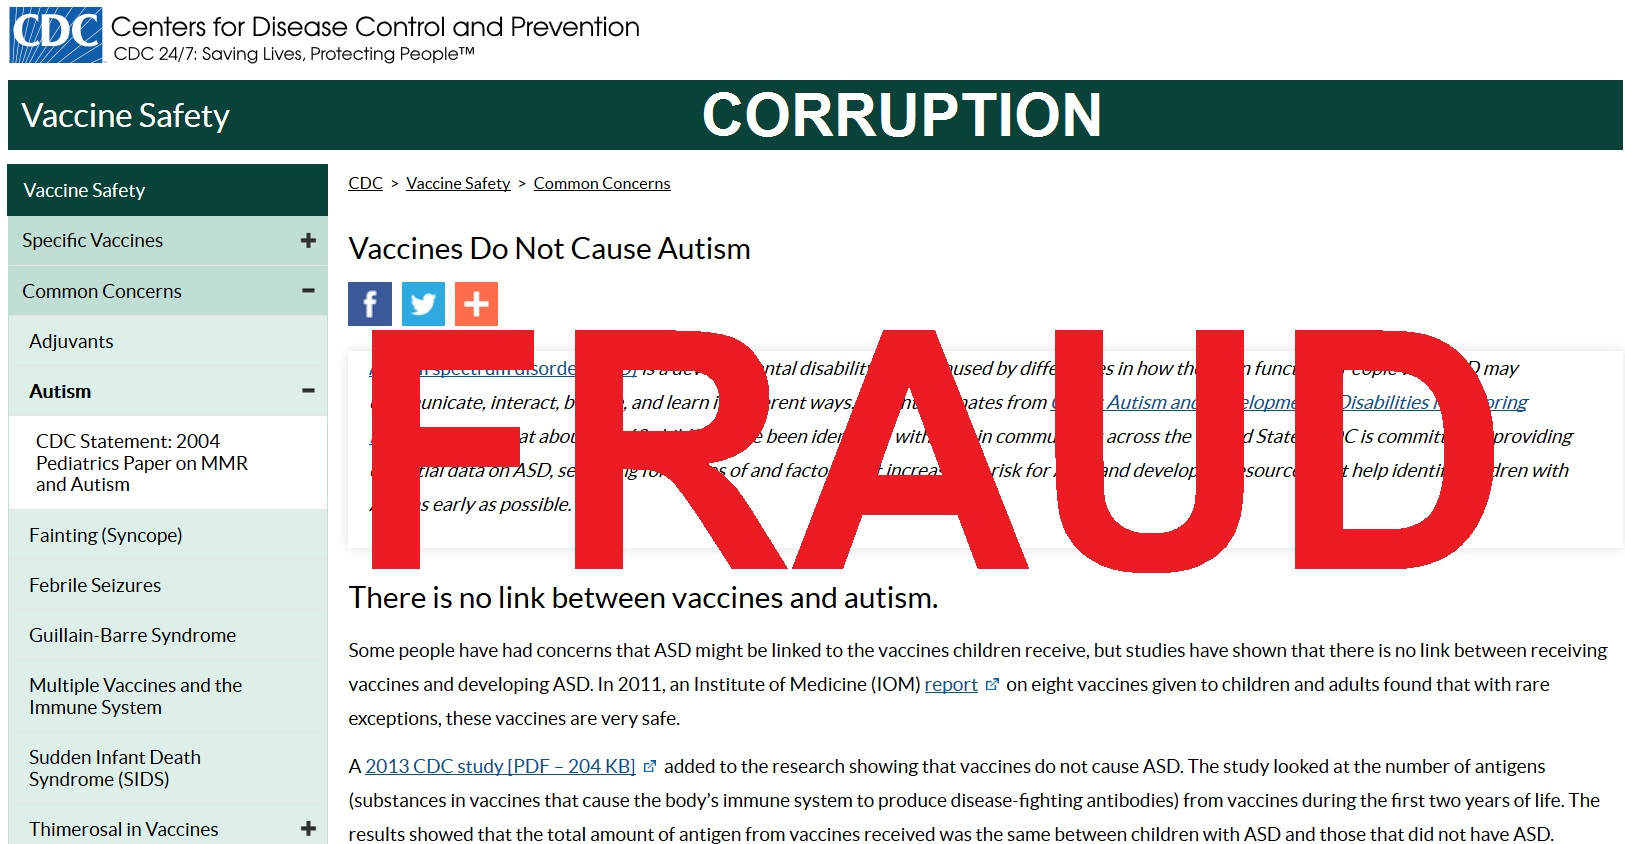 018 Fraud Corruption Research Paper Marvelous Vaccine Topics Example Full